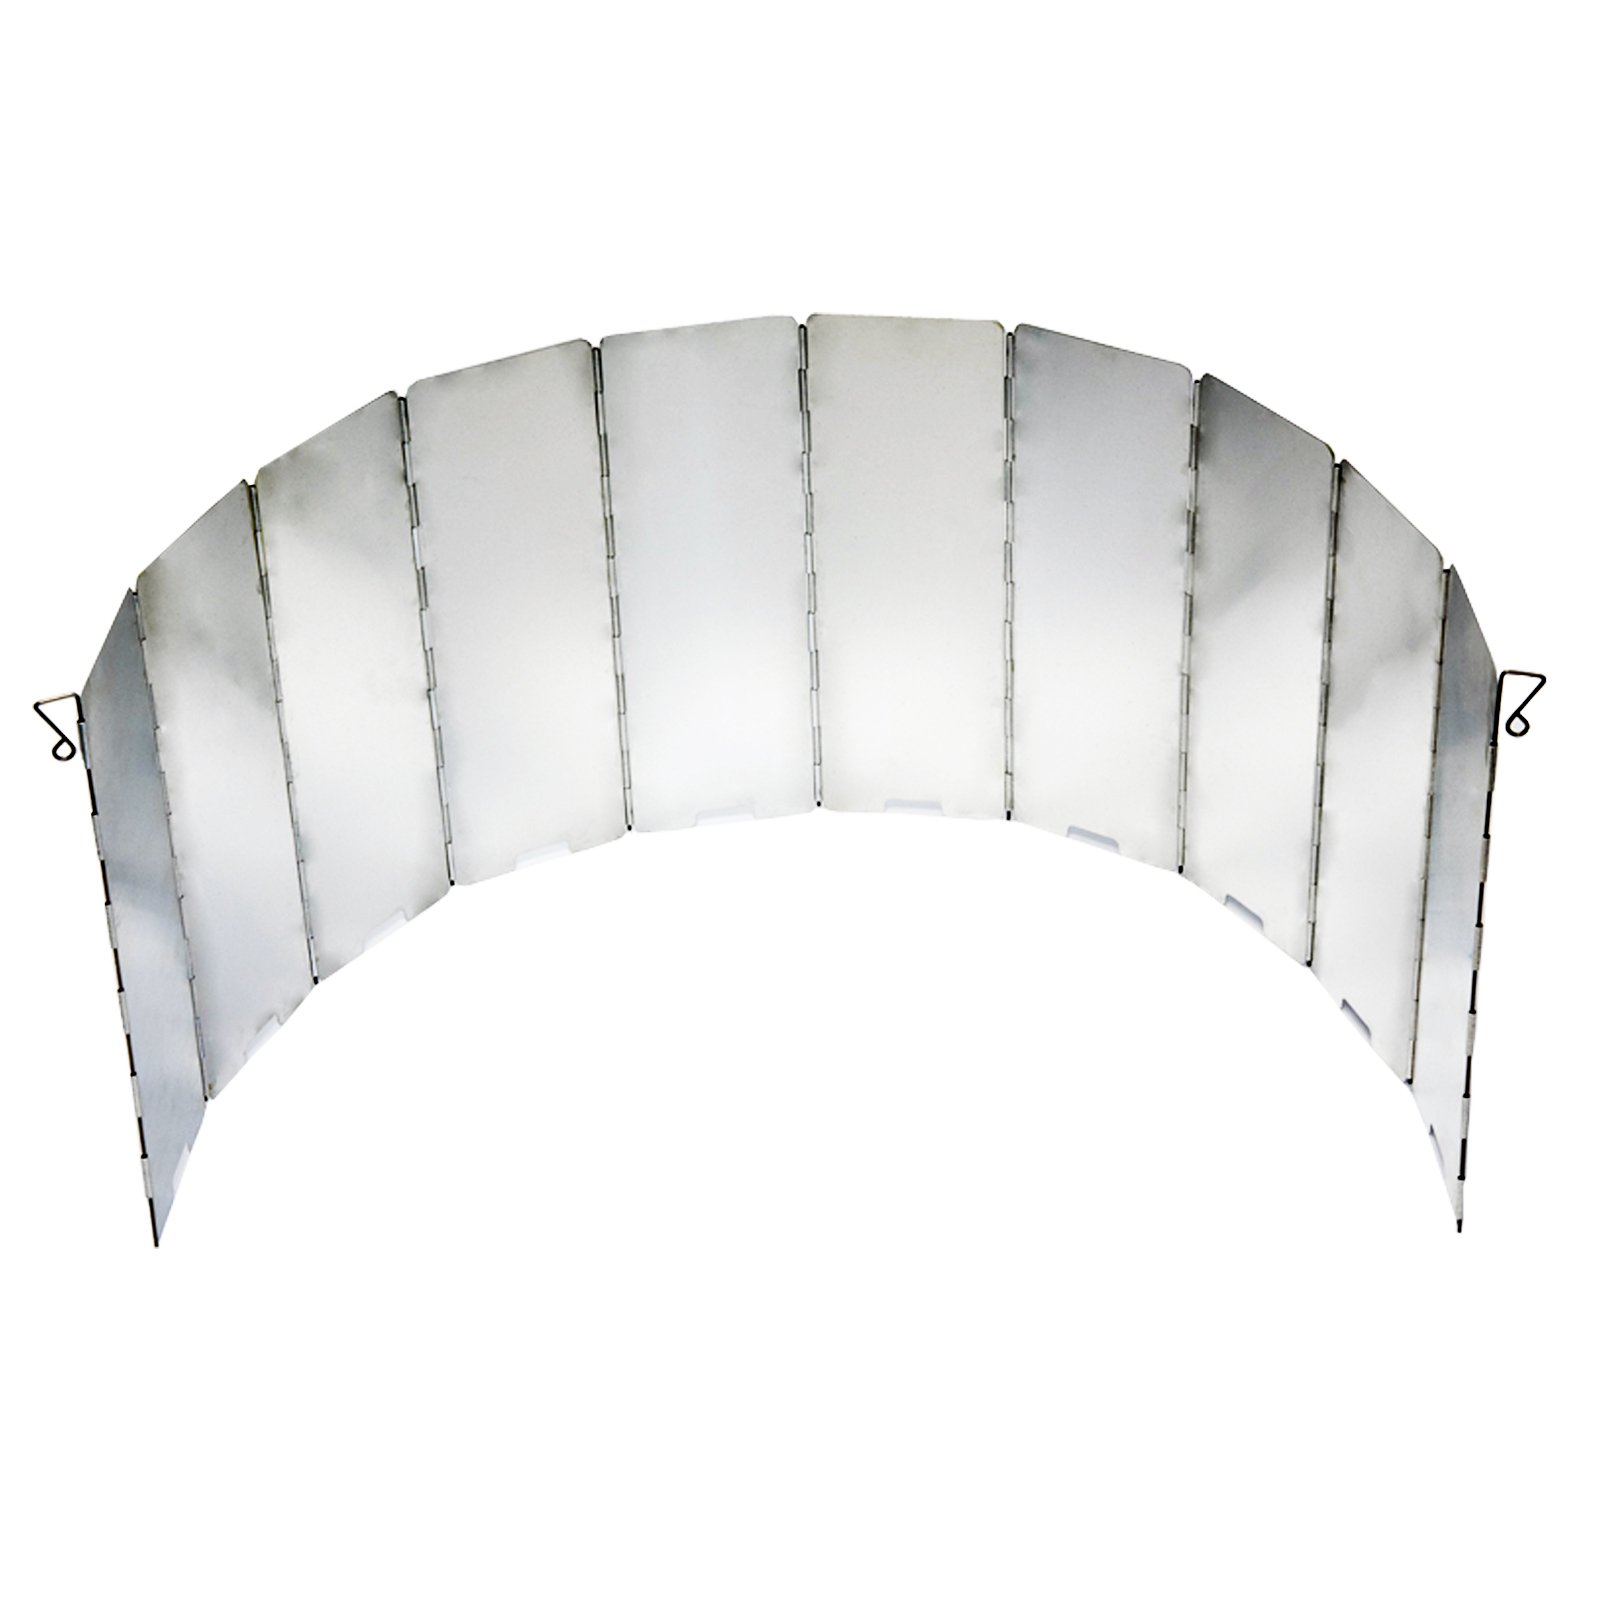 ASR Outdoor Compact Wind Shield Heat Reflector Collapsible Aluminum Panels